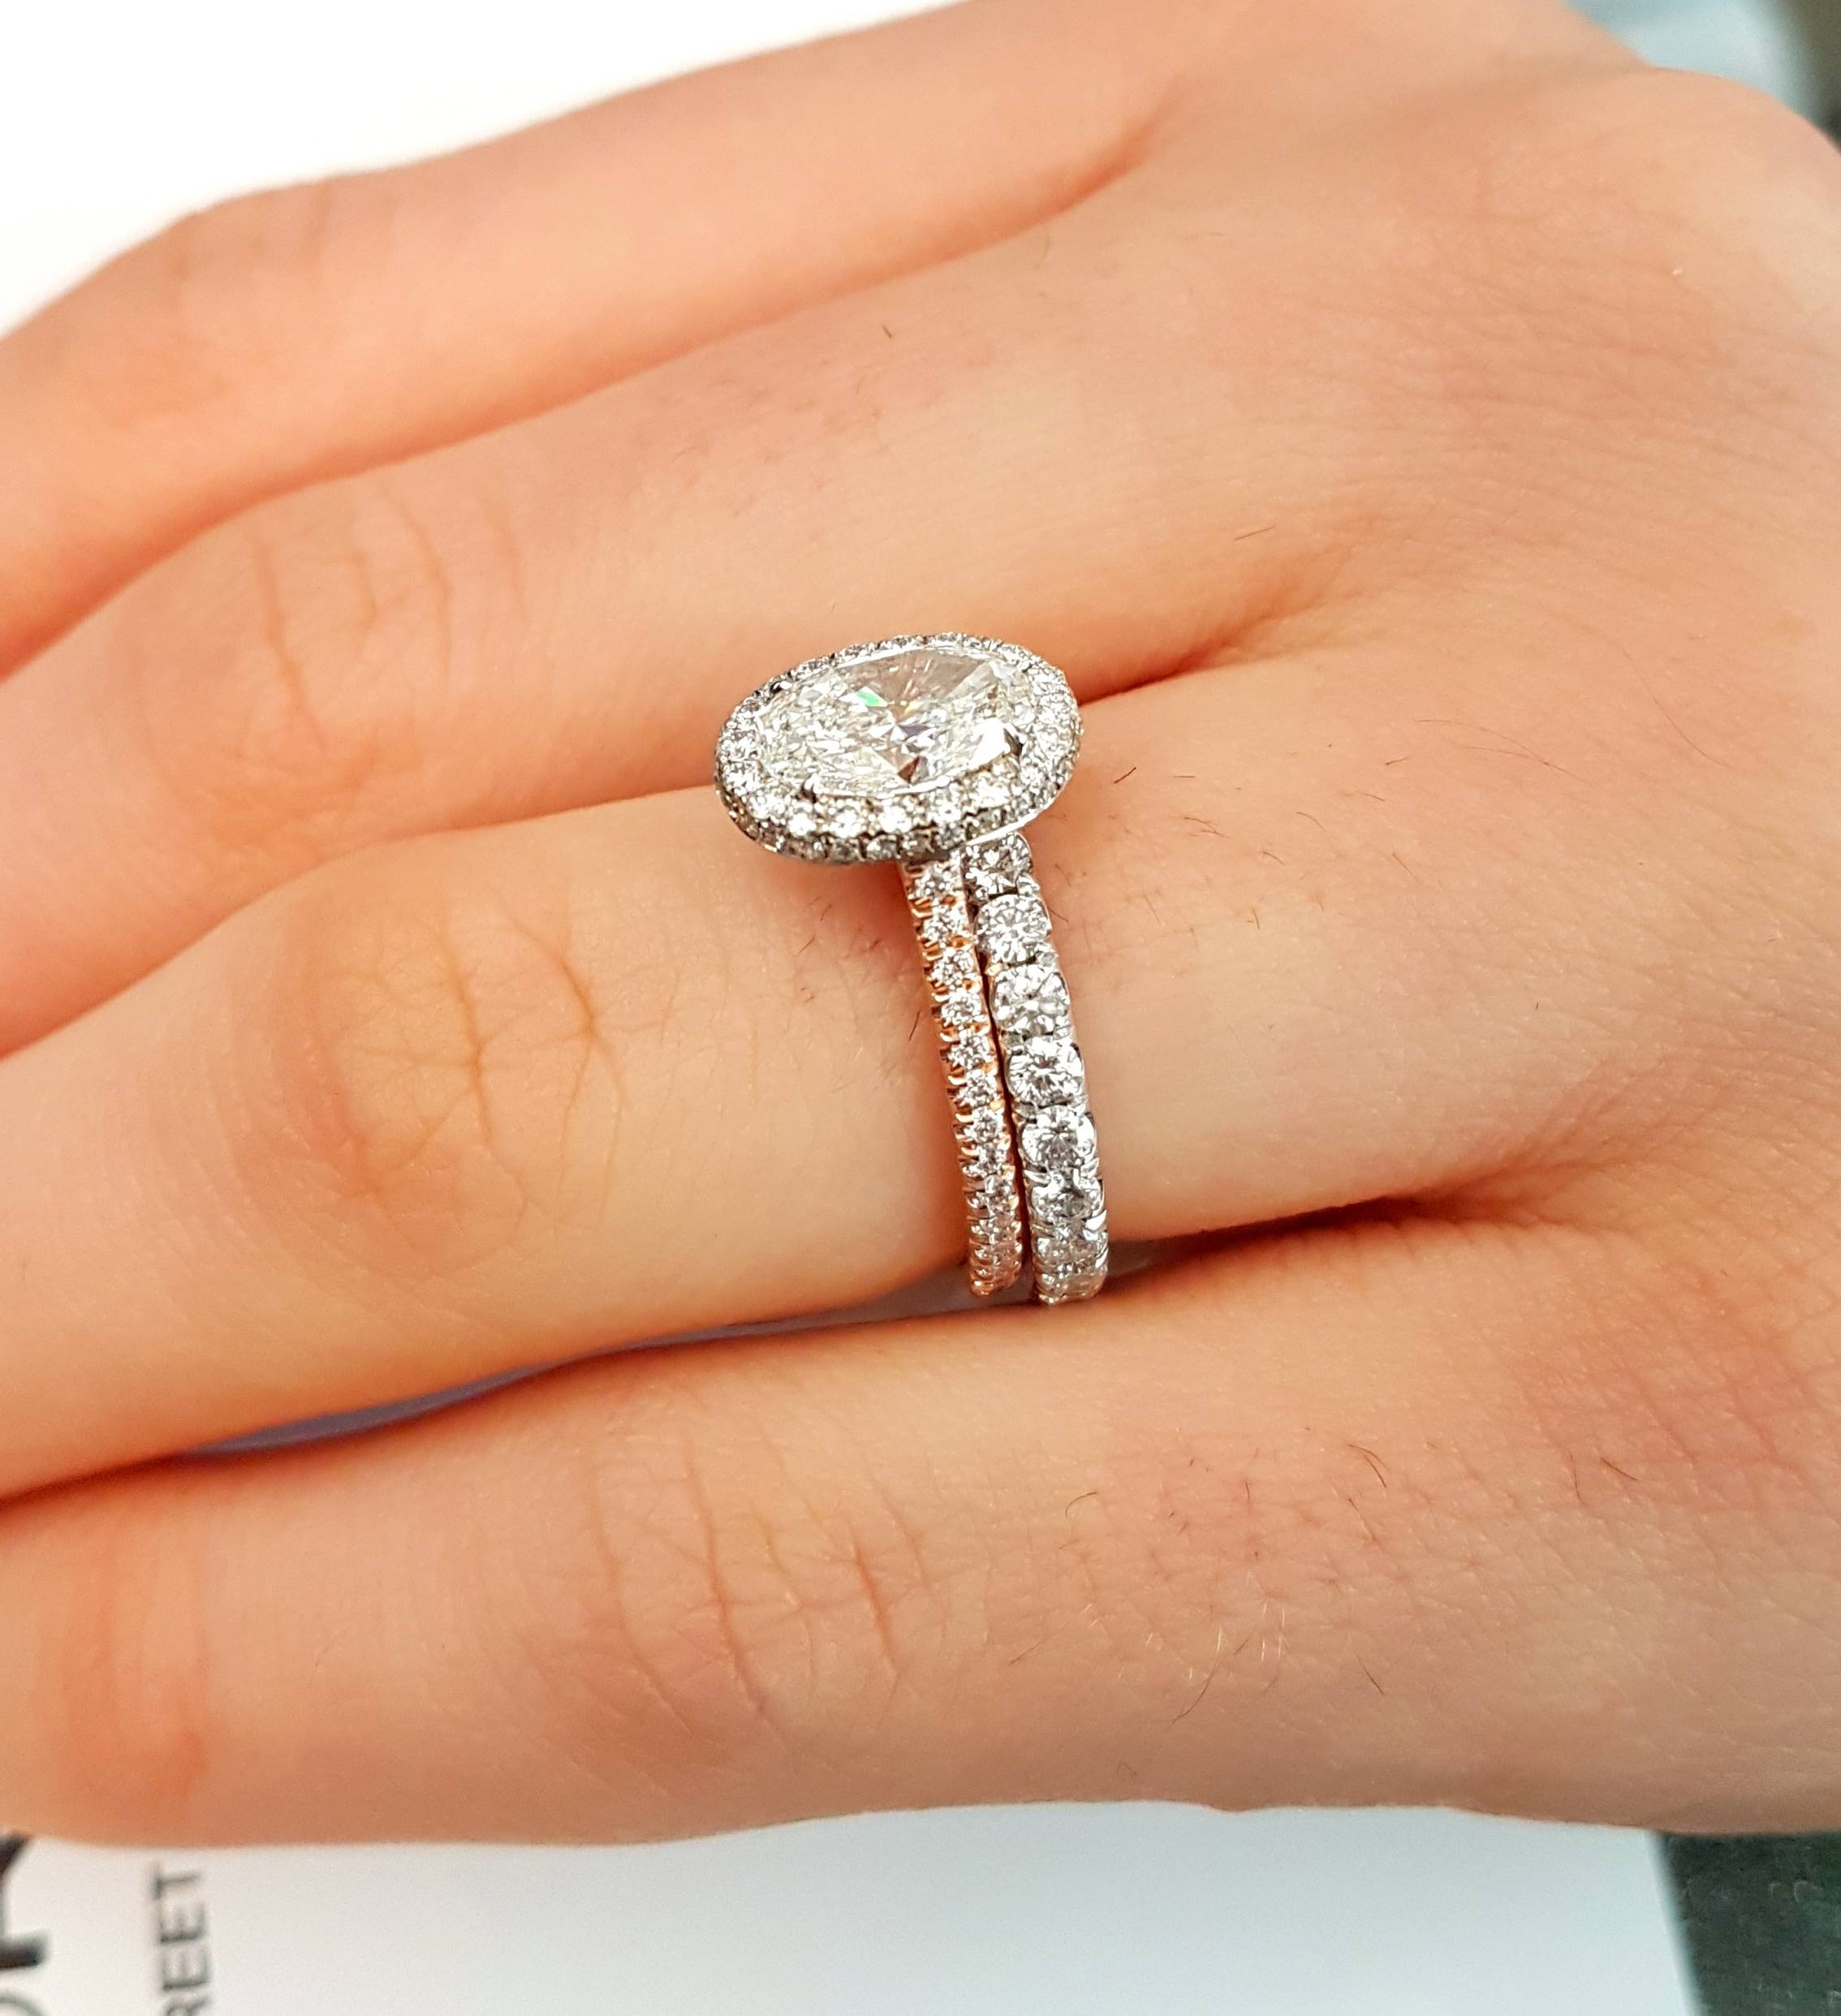 definition rings best wedding good diamond of promise